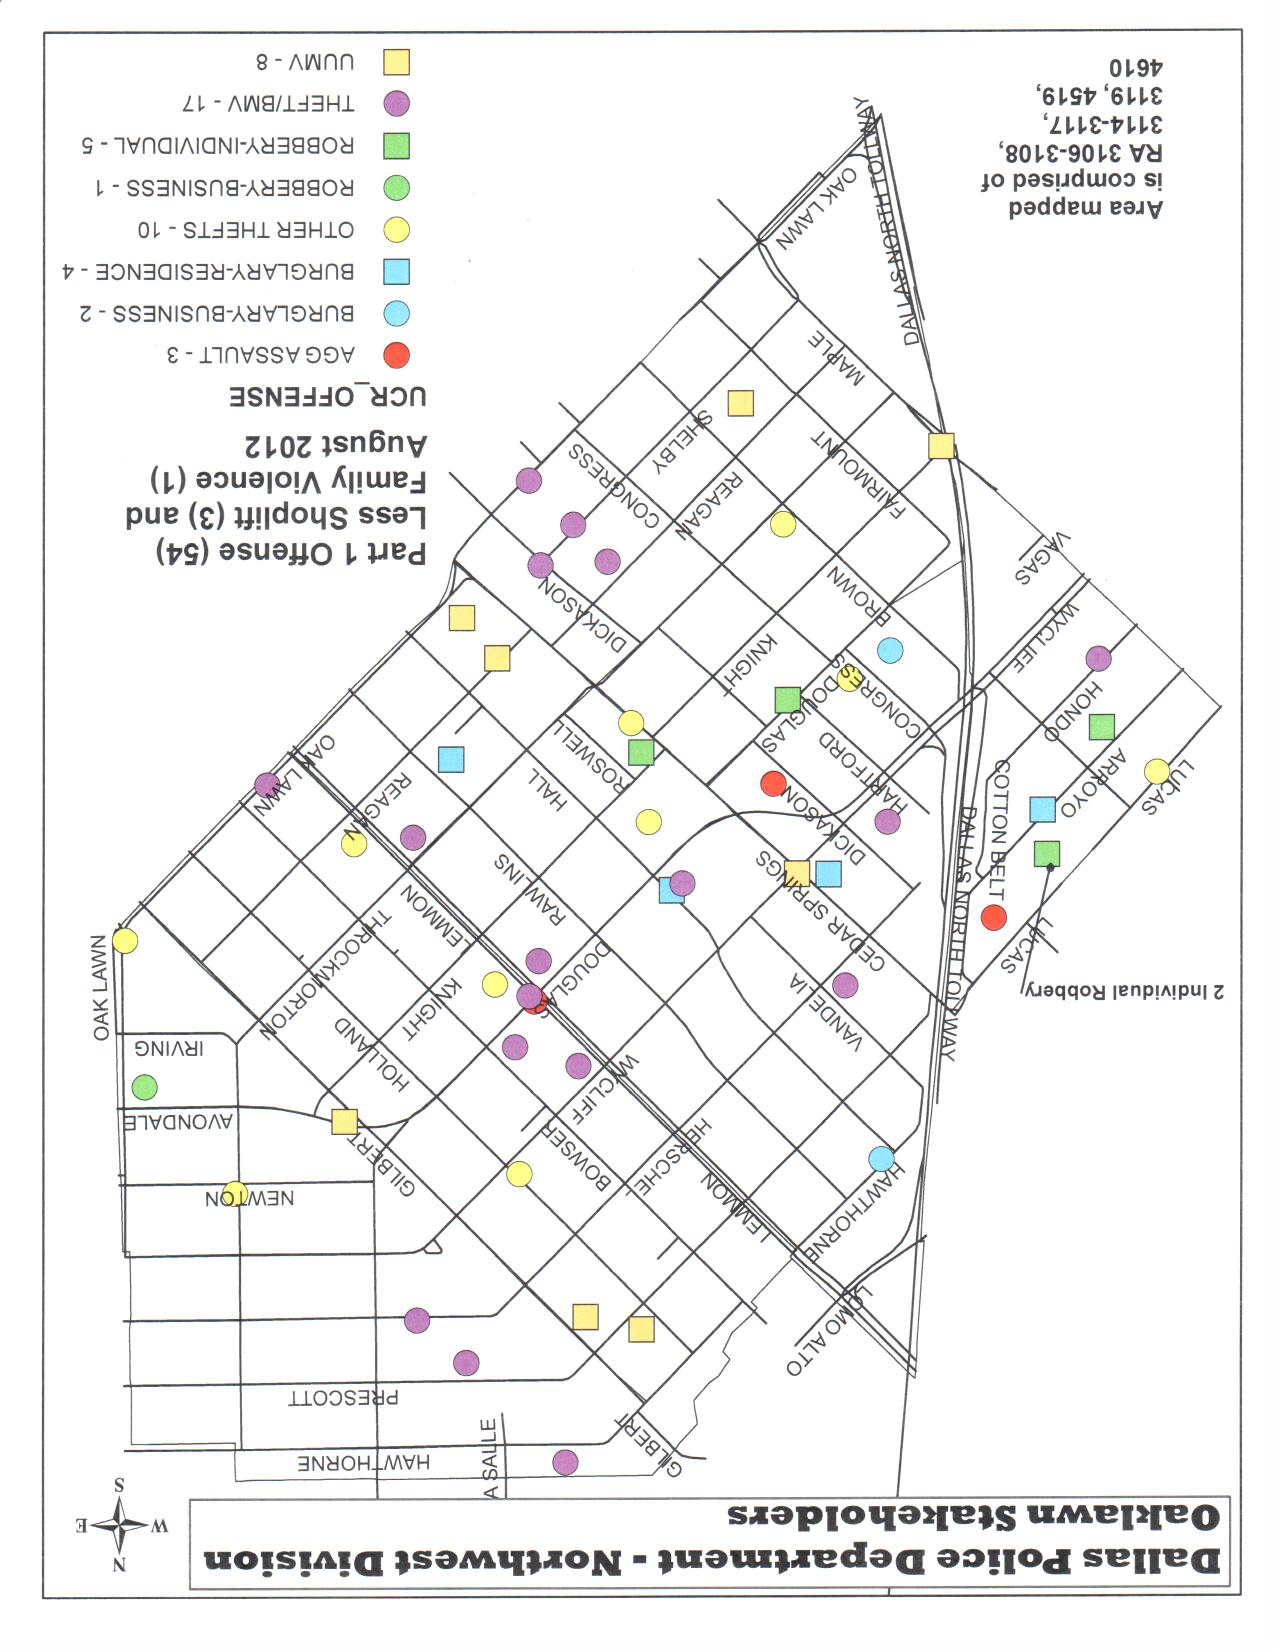 MAPS: Crime in the gayborhood